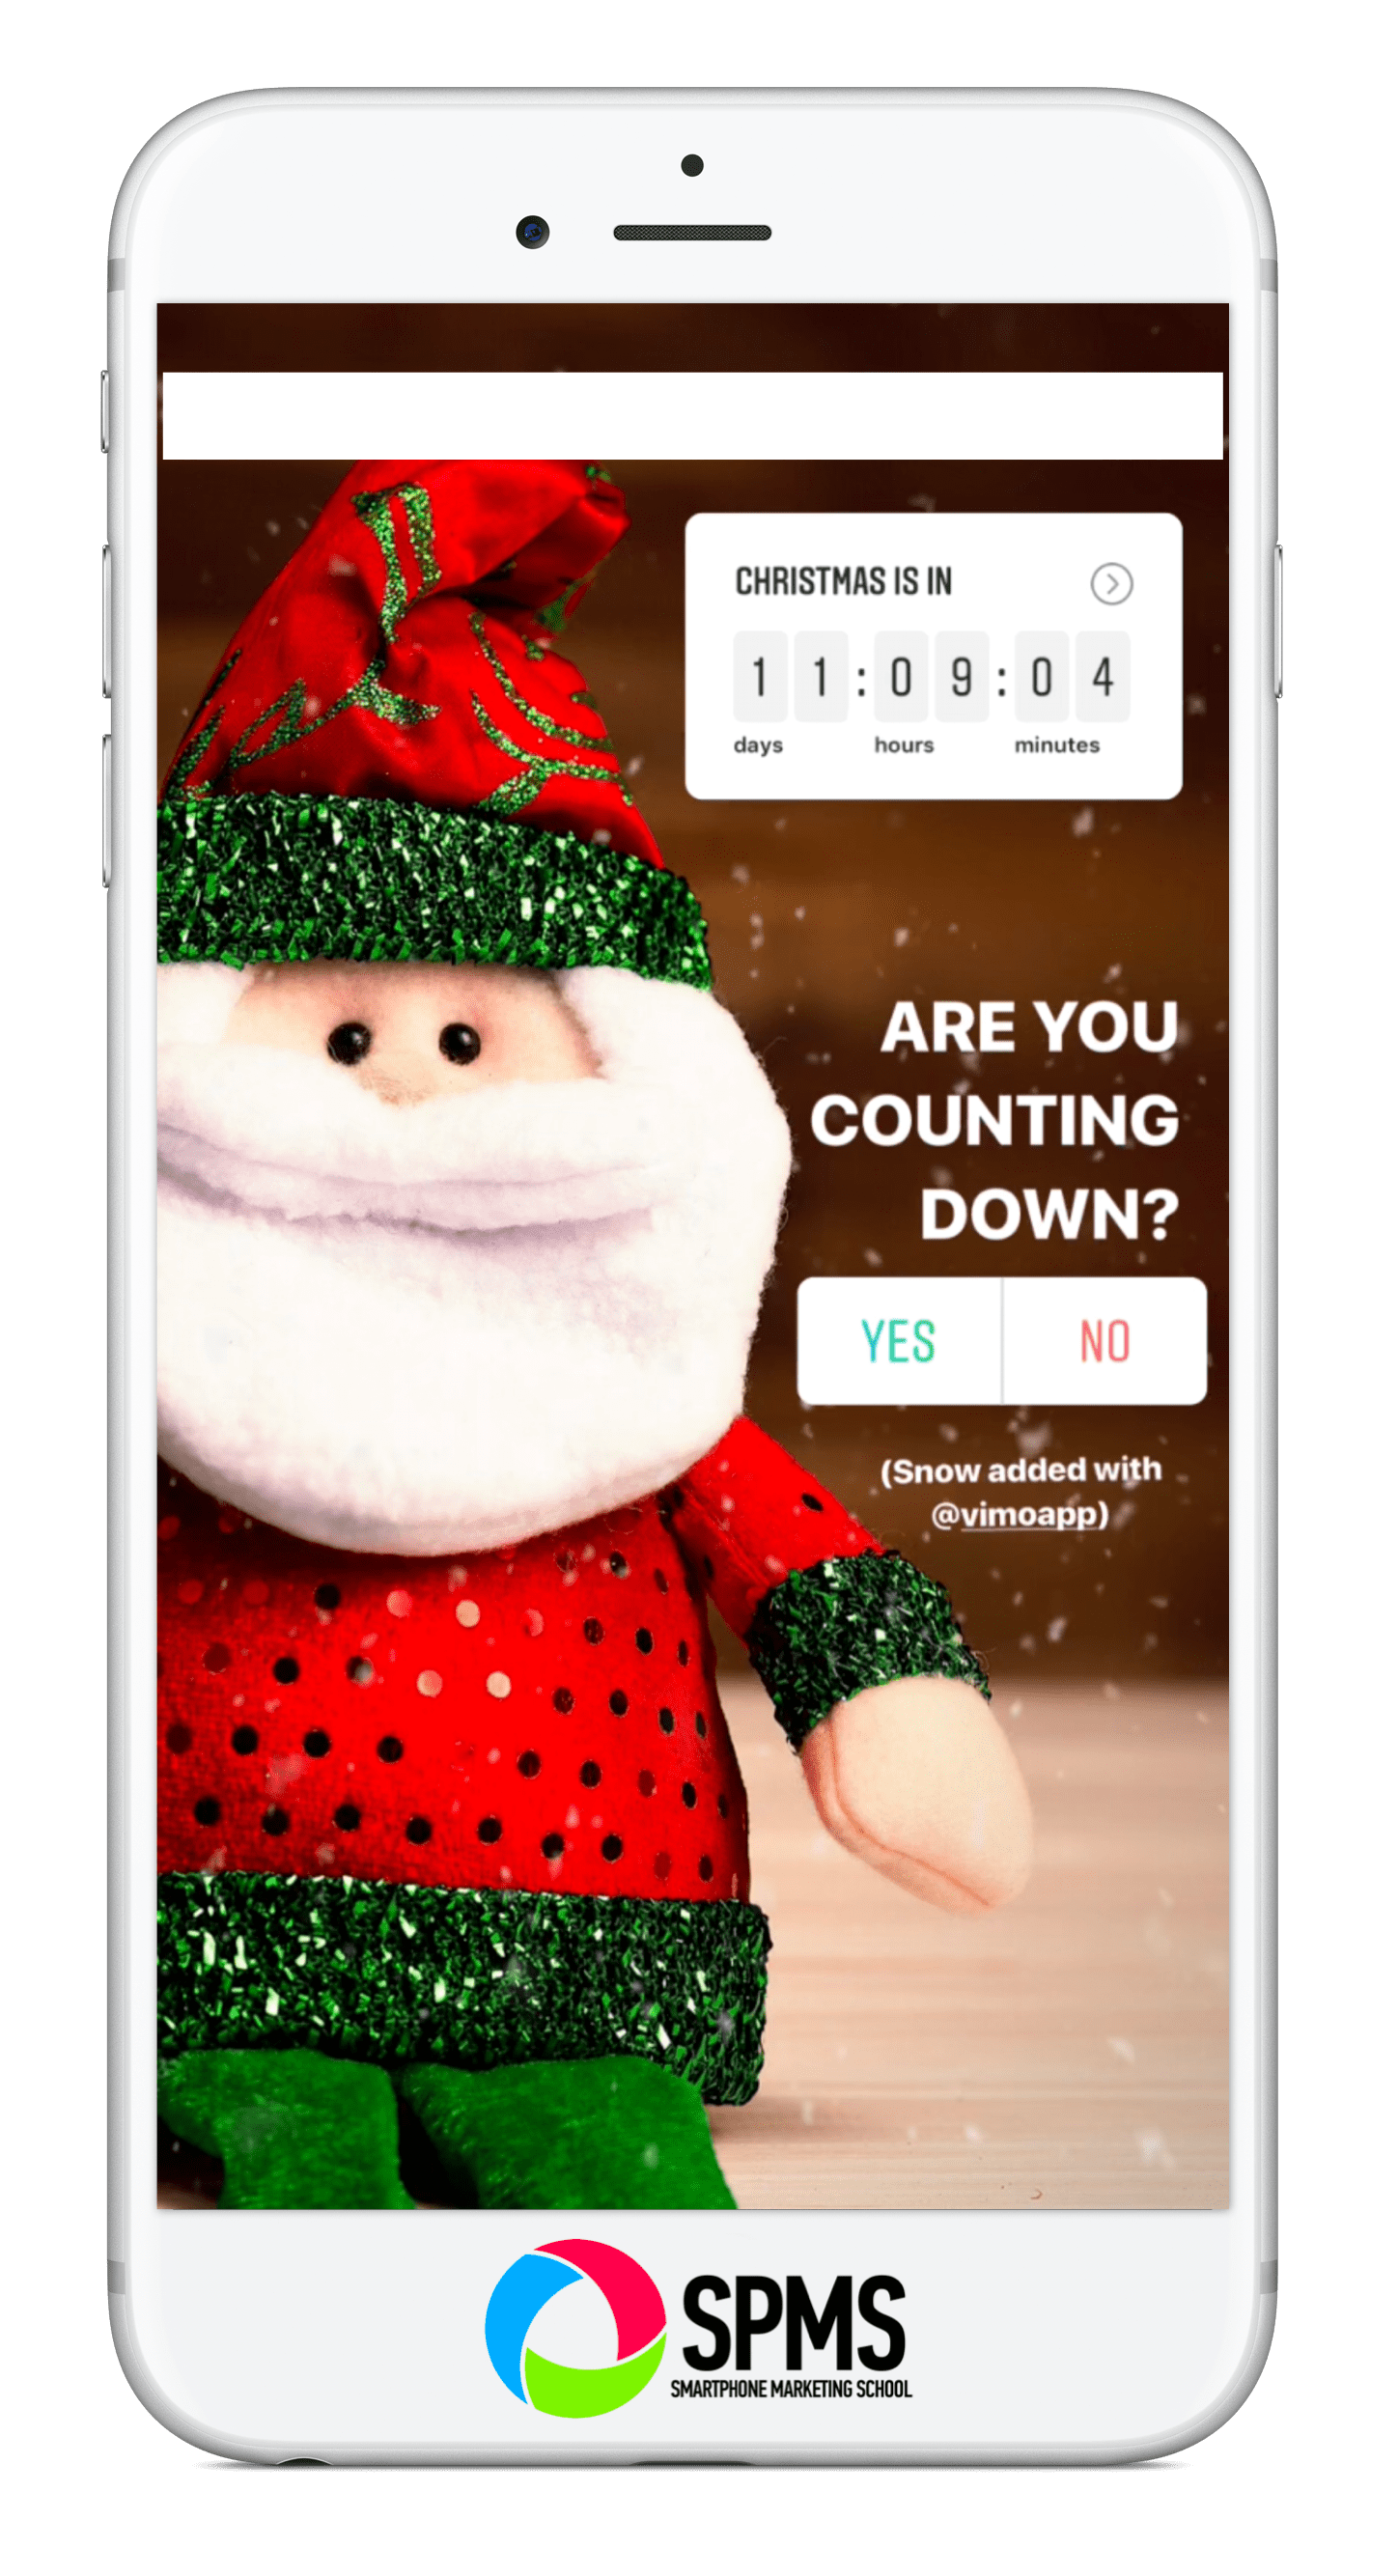 Market Your Launch With The Instagram Stories Countdown Timer